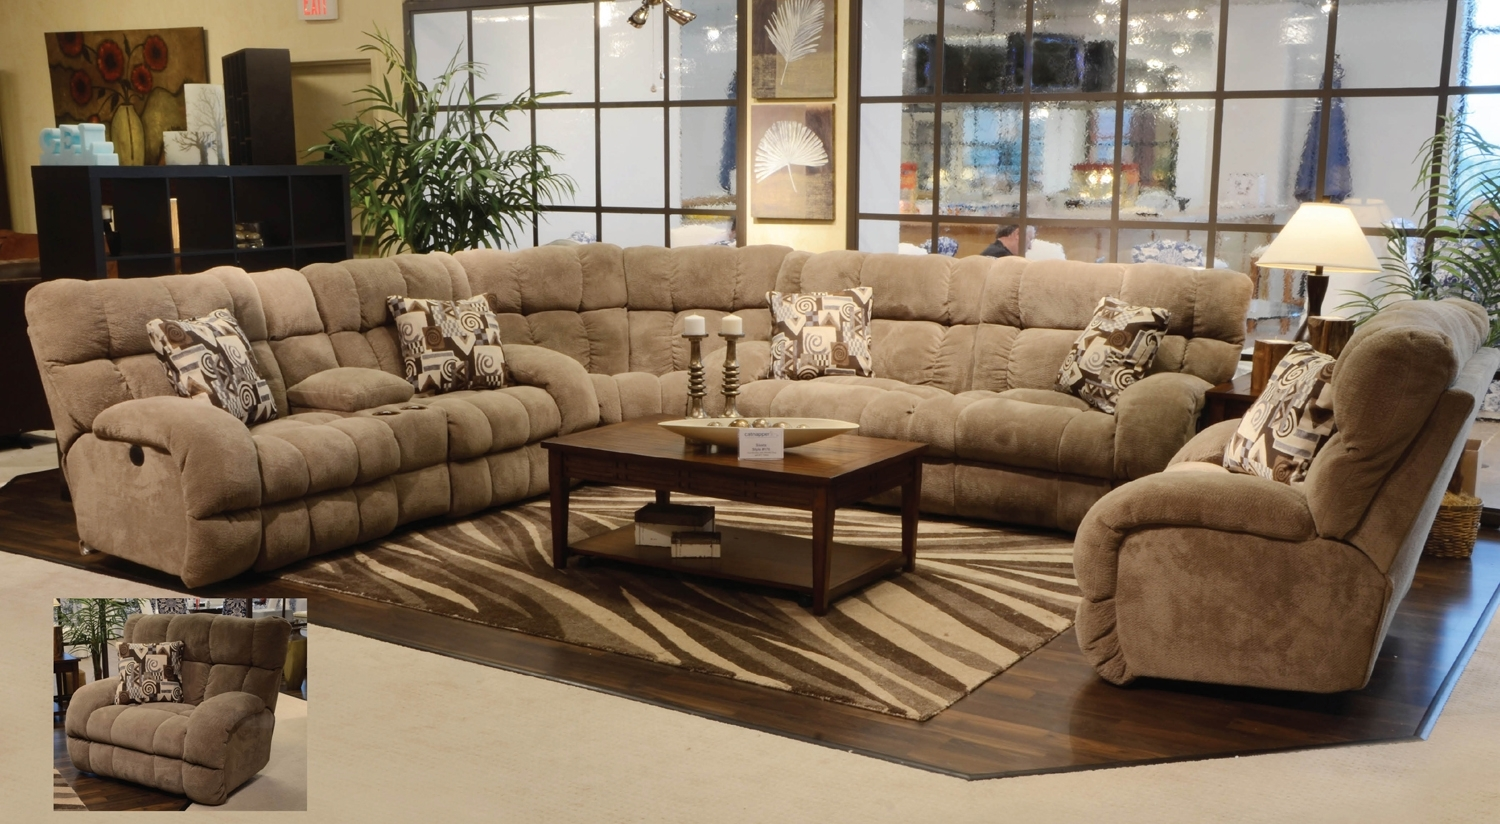 Furniture : Sectional Sofa 110 X 110 Corner Couch Ideas Sectional Within 110X110 Sectional Sofas (Image 7 of 10)